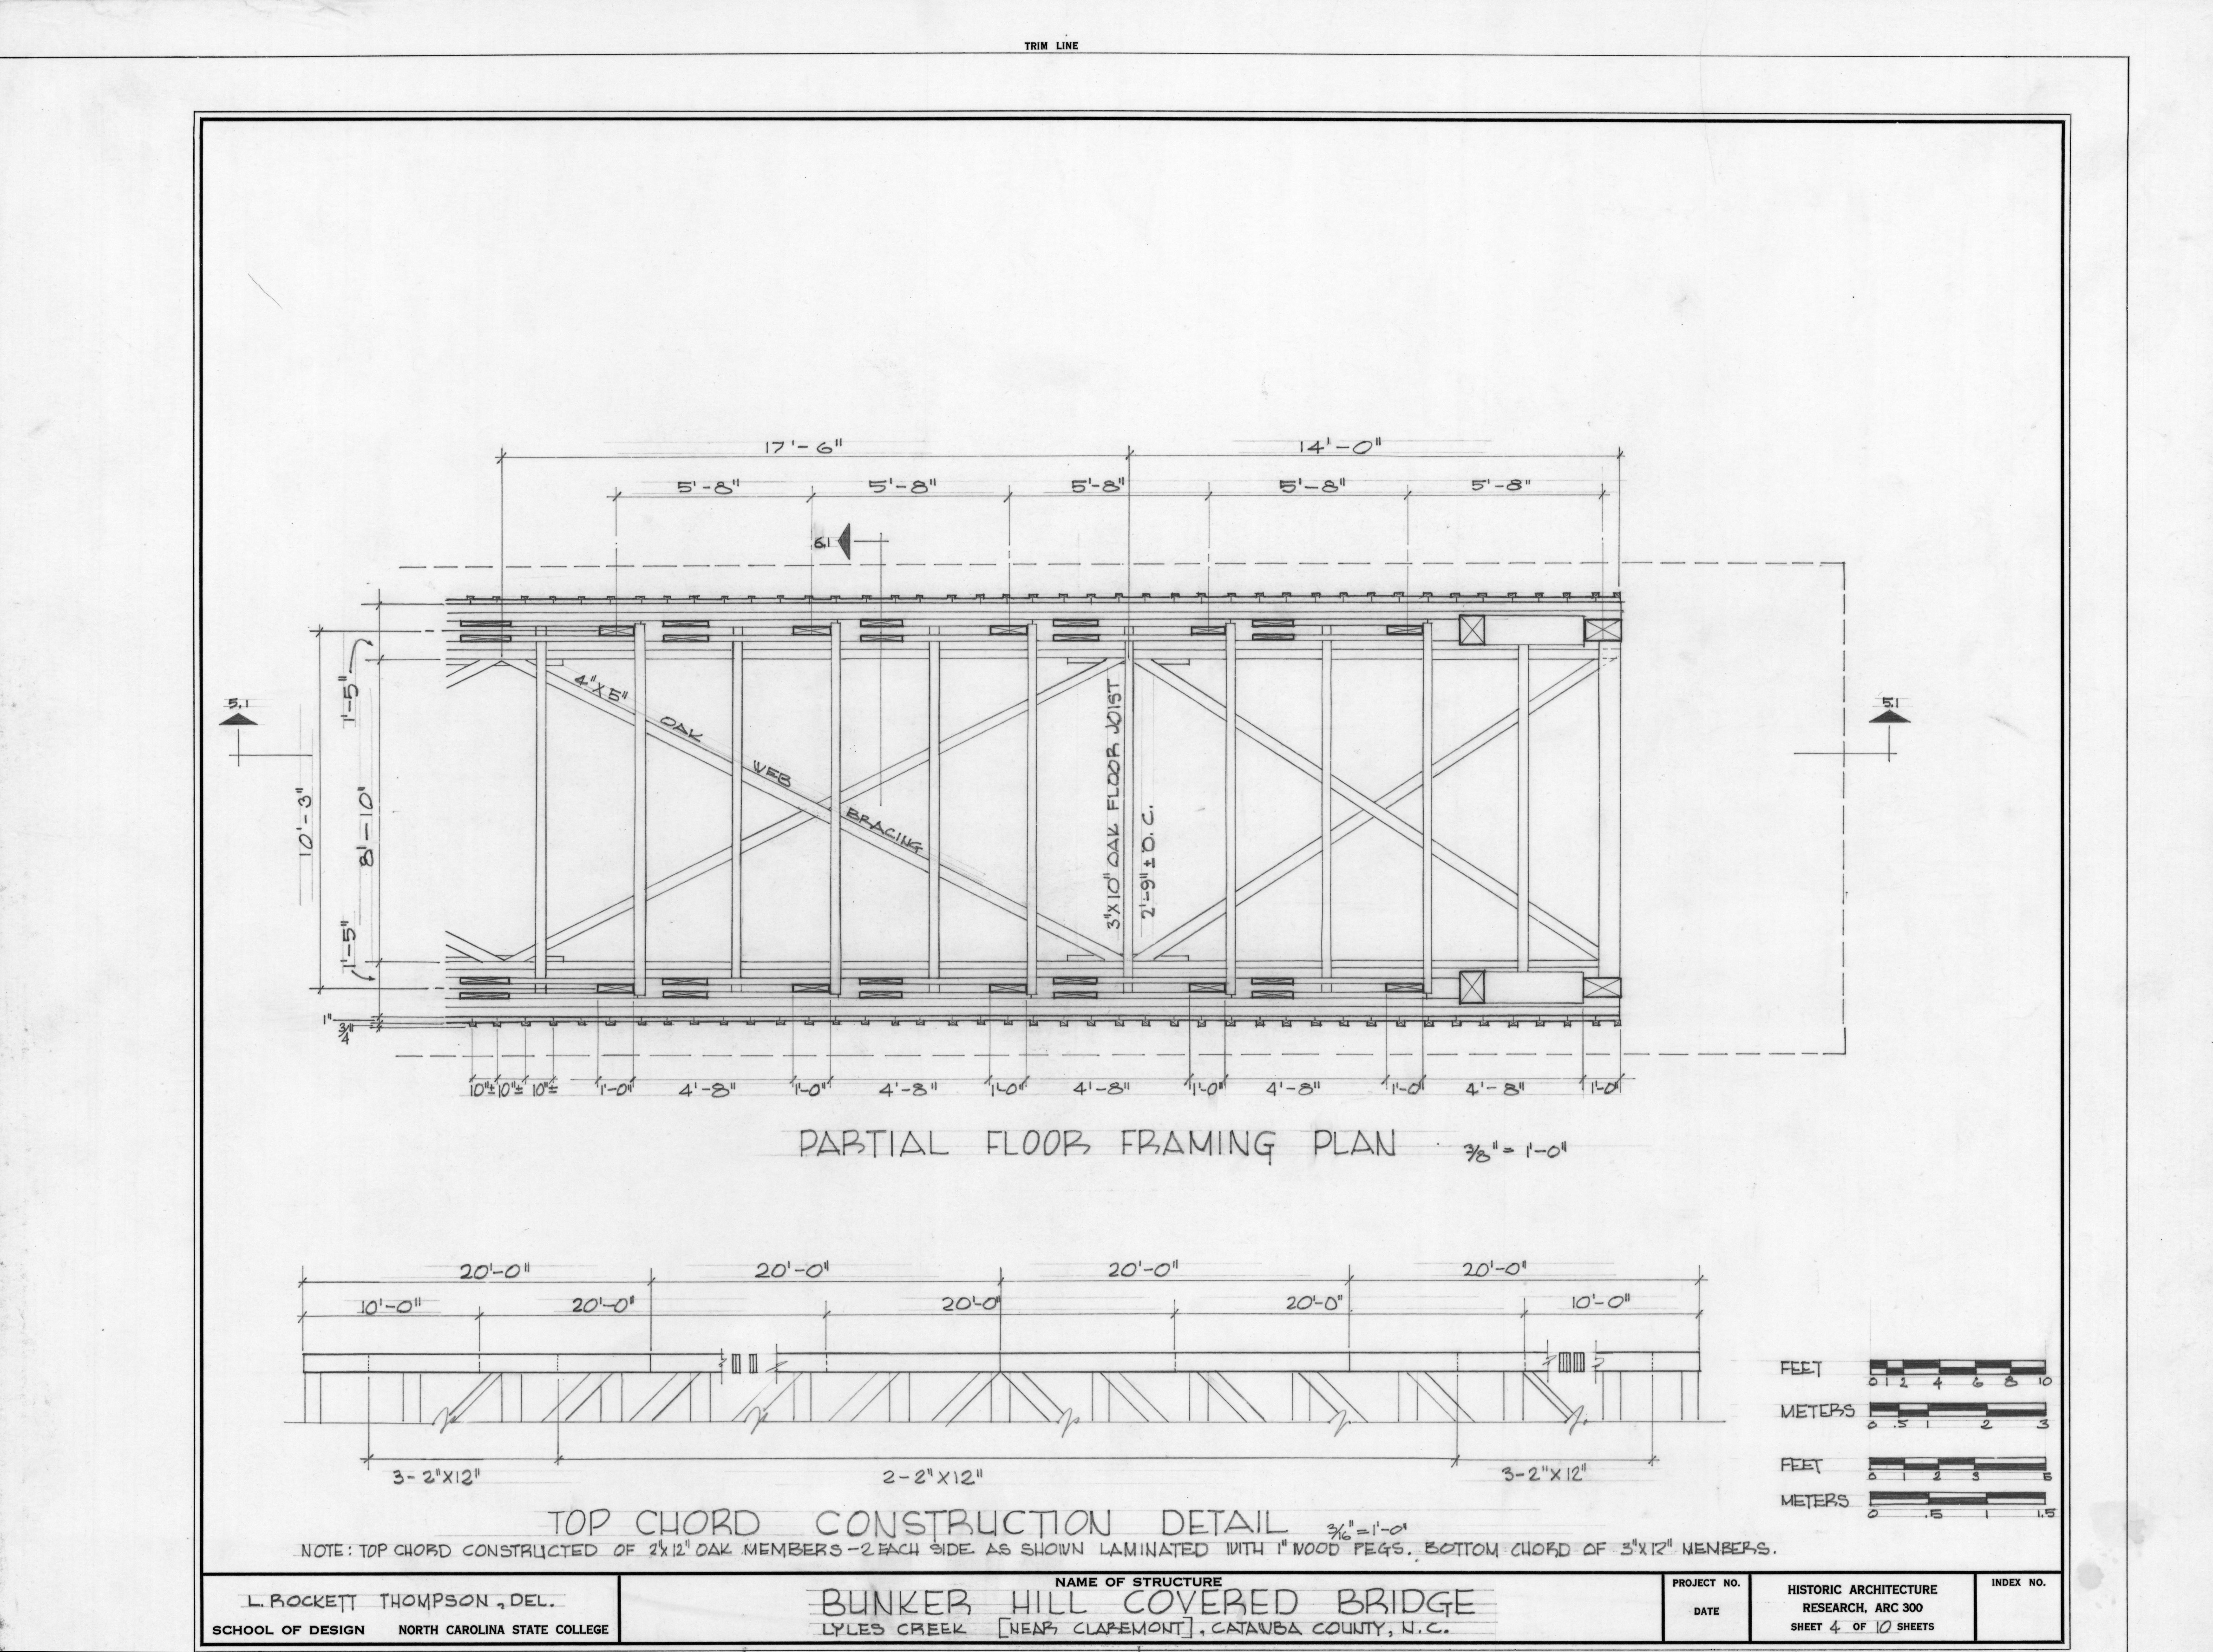 Partial framing plan and construction detail bunker hill for Covered bridge design plans